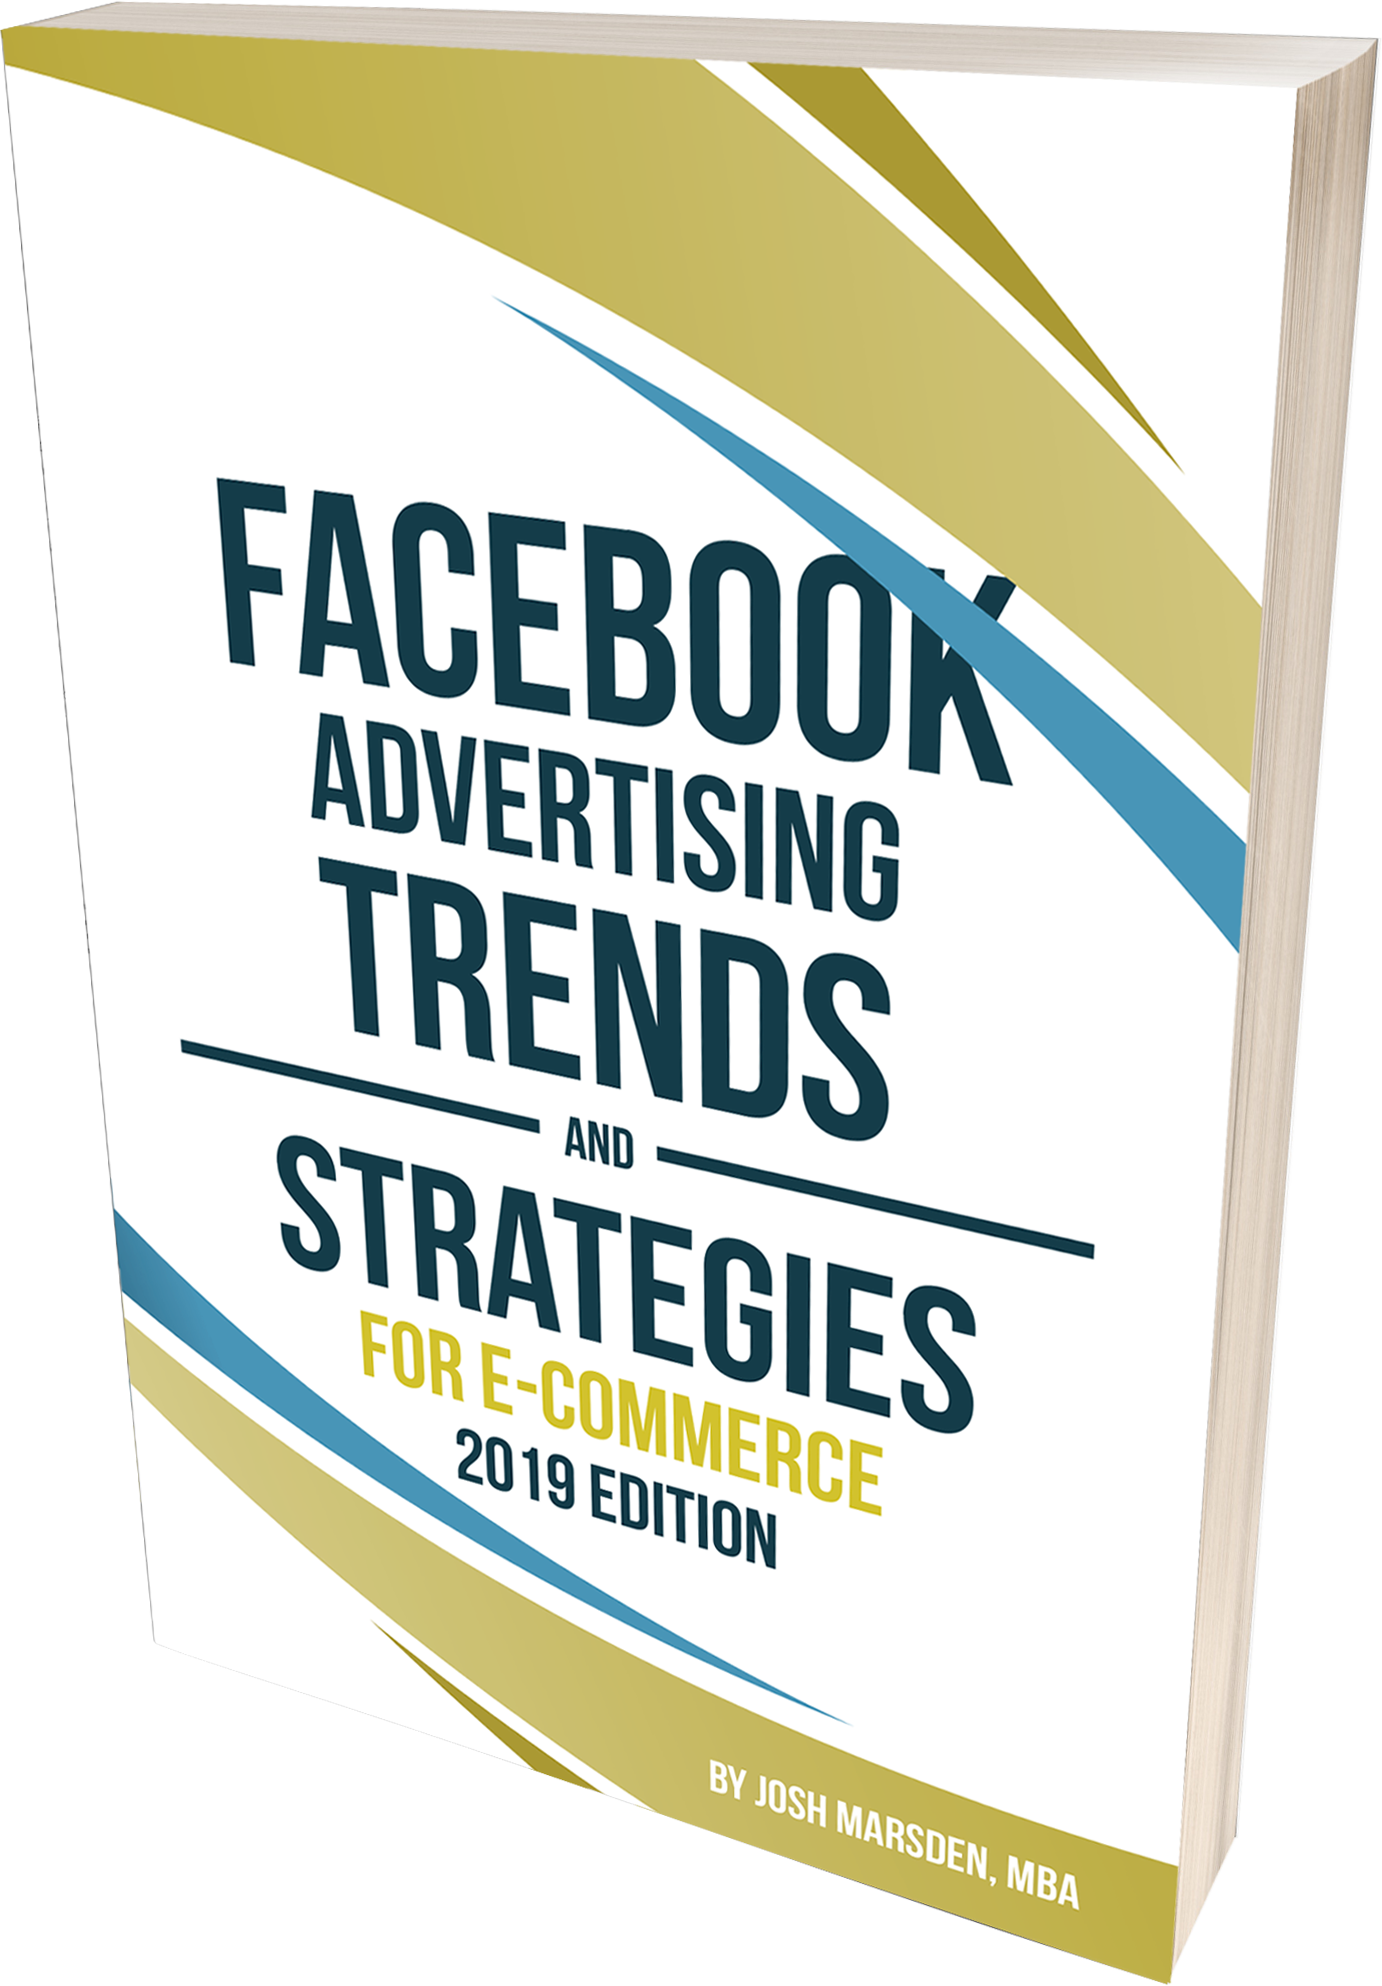 Facebook Advertising Trends and Strategies For E-Commerce 2019 Edition